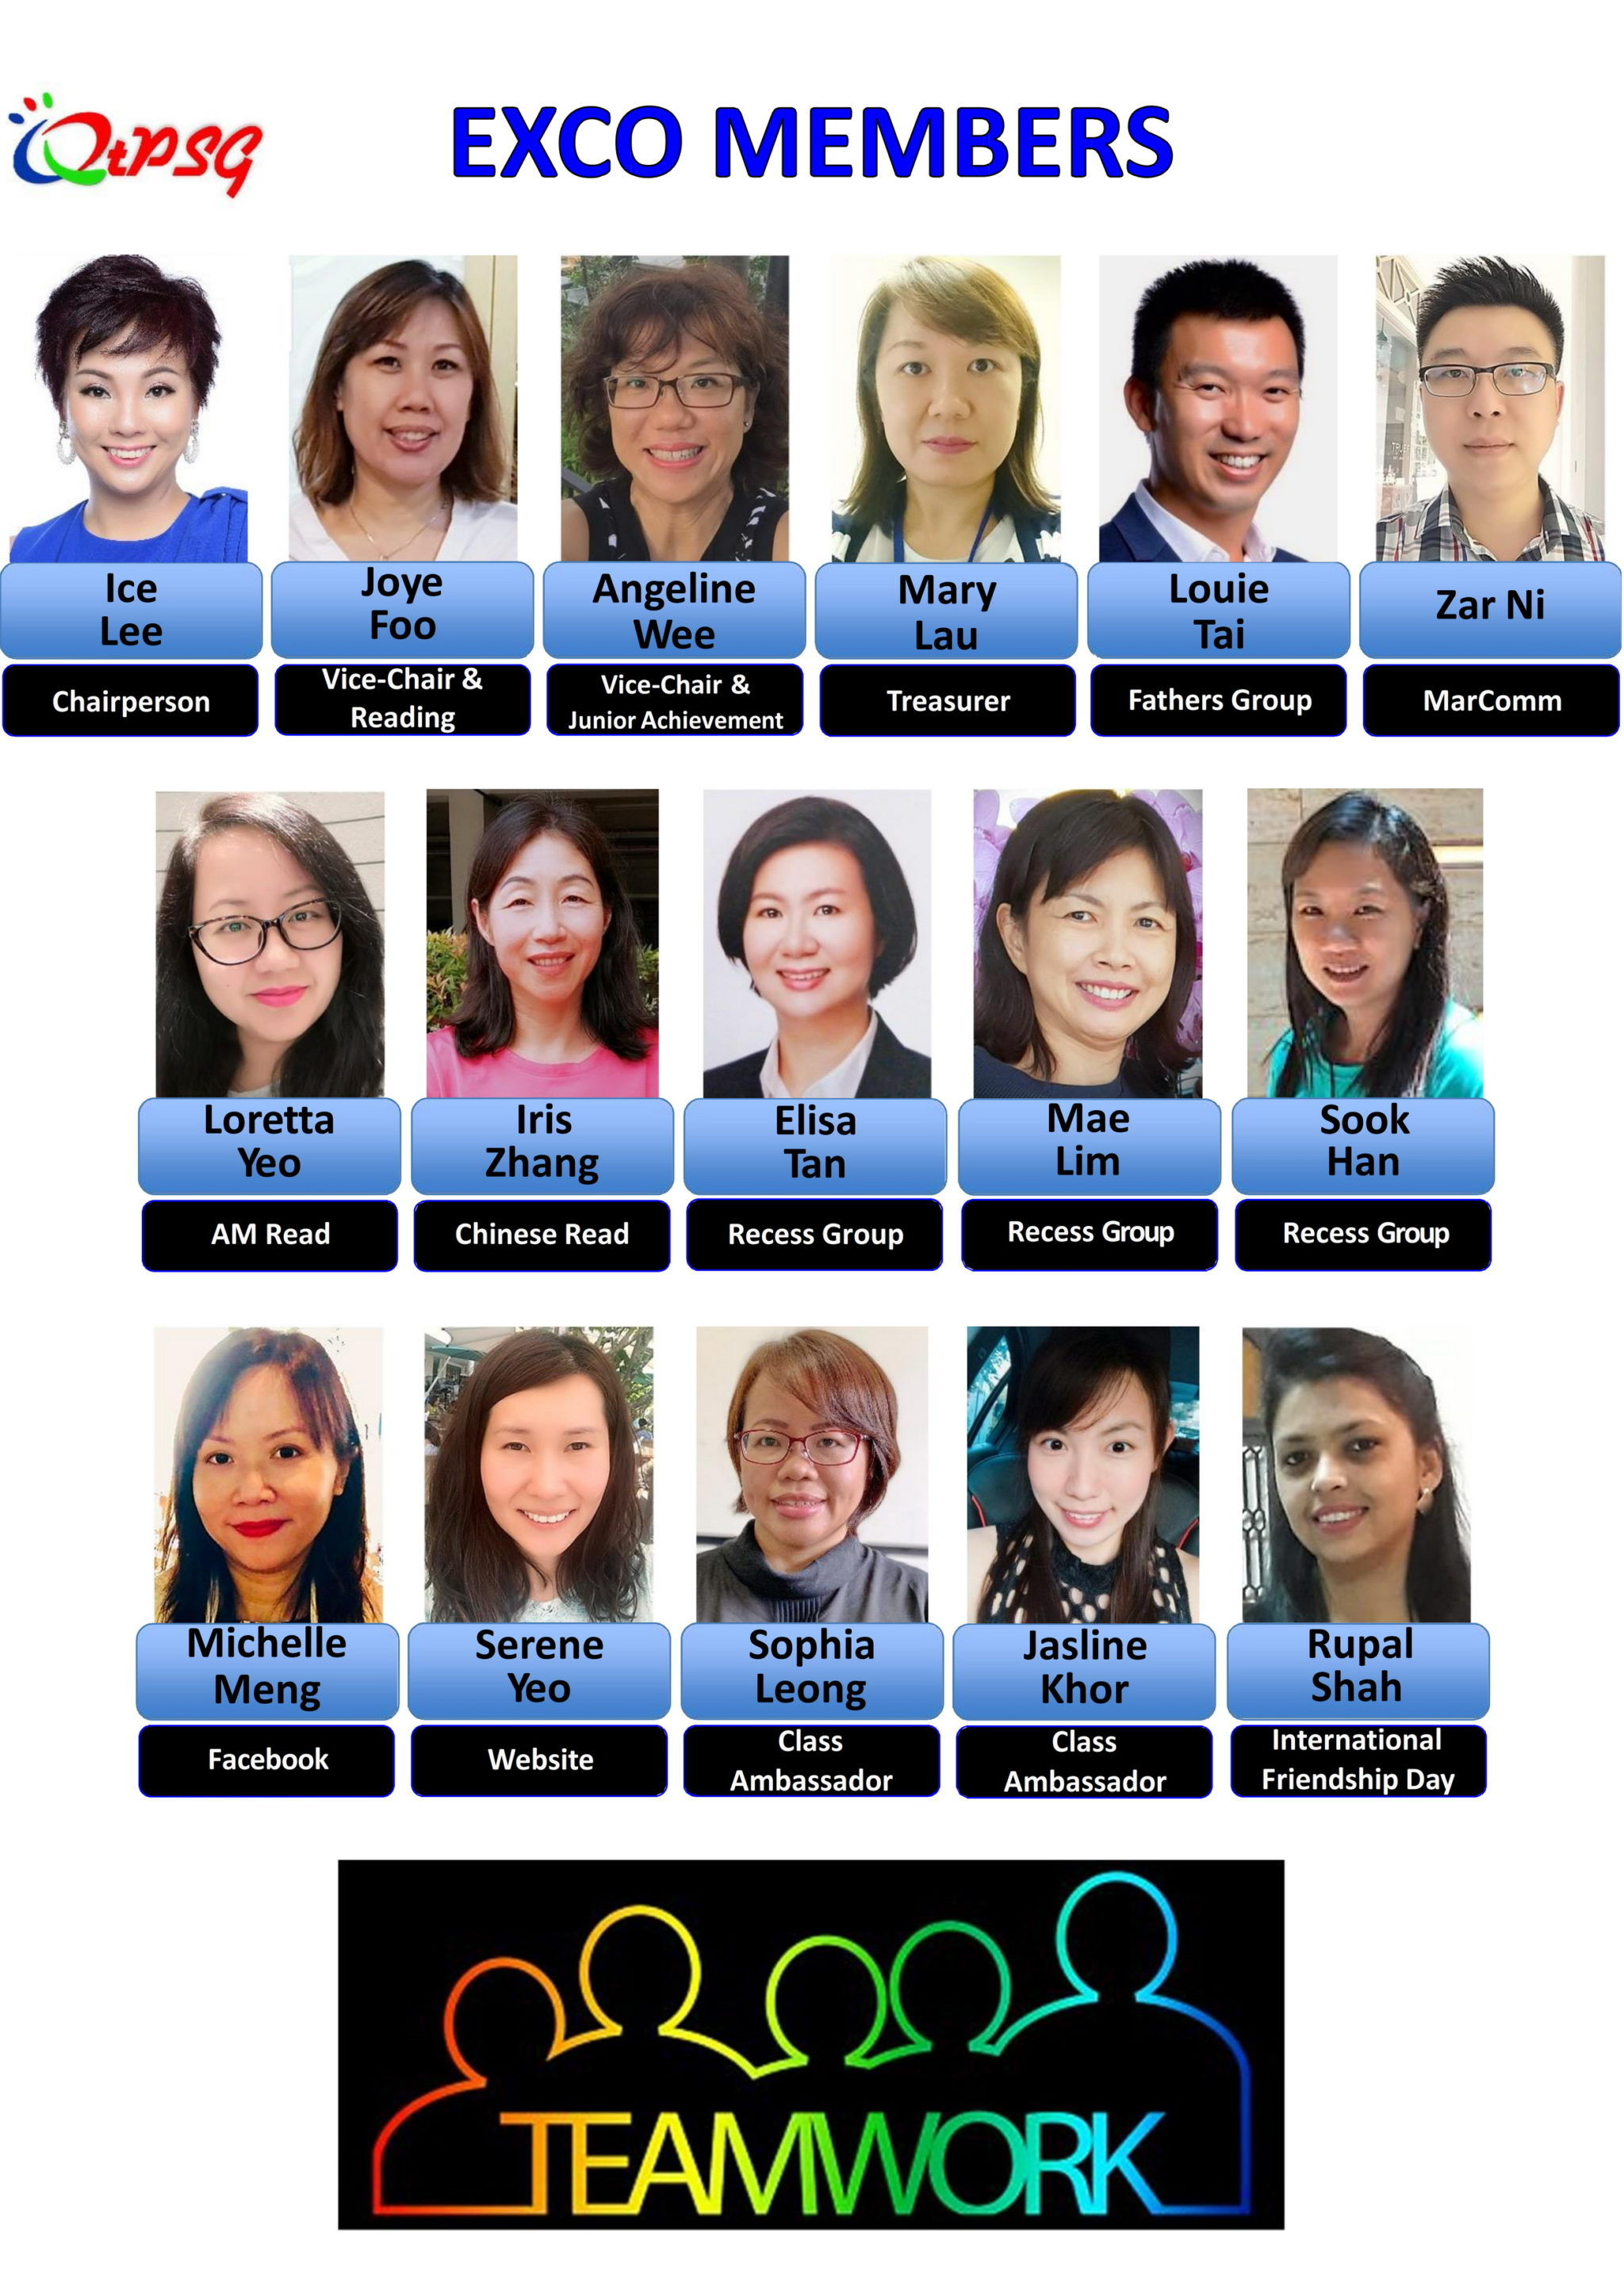 Exco Members 2020 - Resized